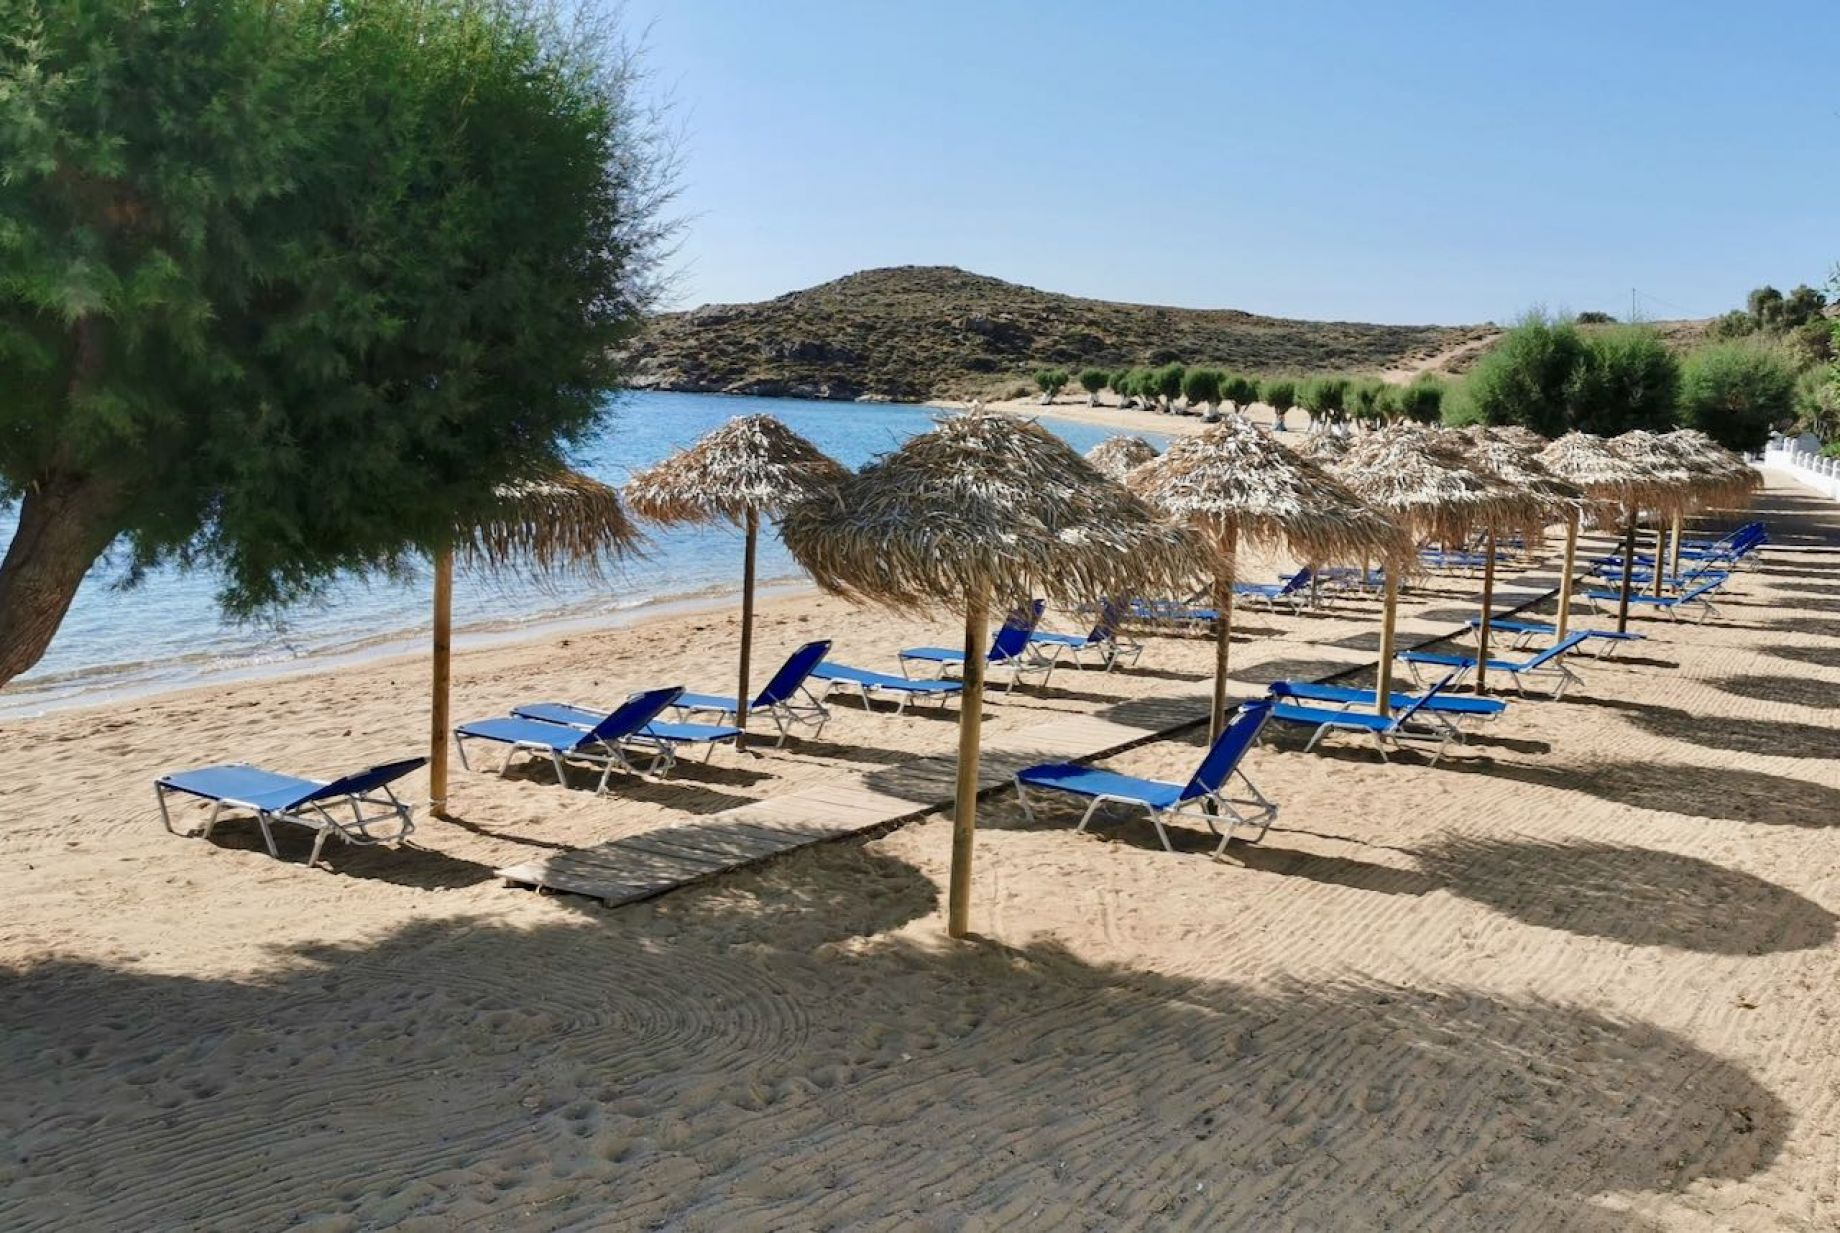 Coralli Camping - Coralli Bungalows - Παραλία Λιβαδάκια Σέριφος ...